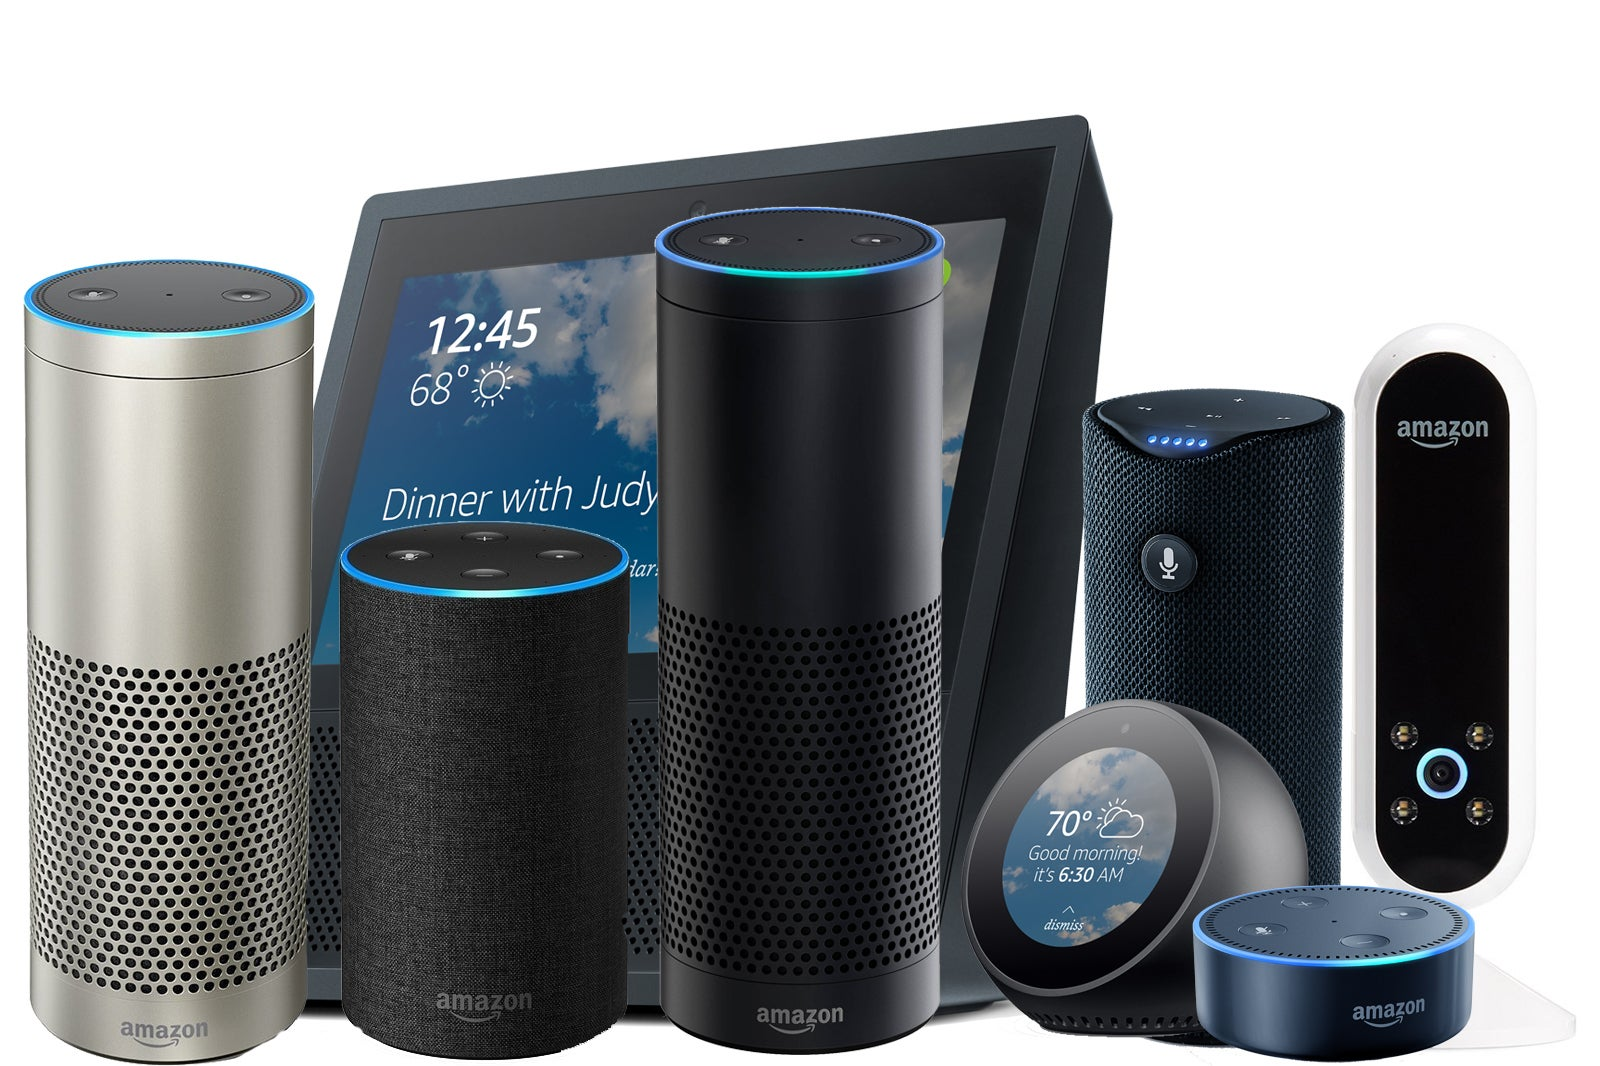 Amazon Echos and other devices with Alexa arent being used for shopping much: Report